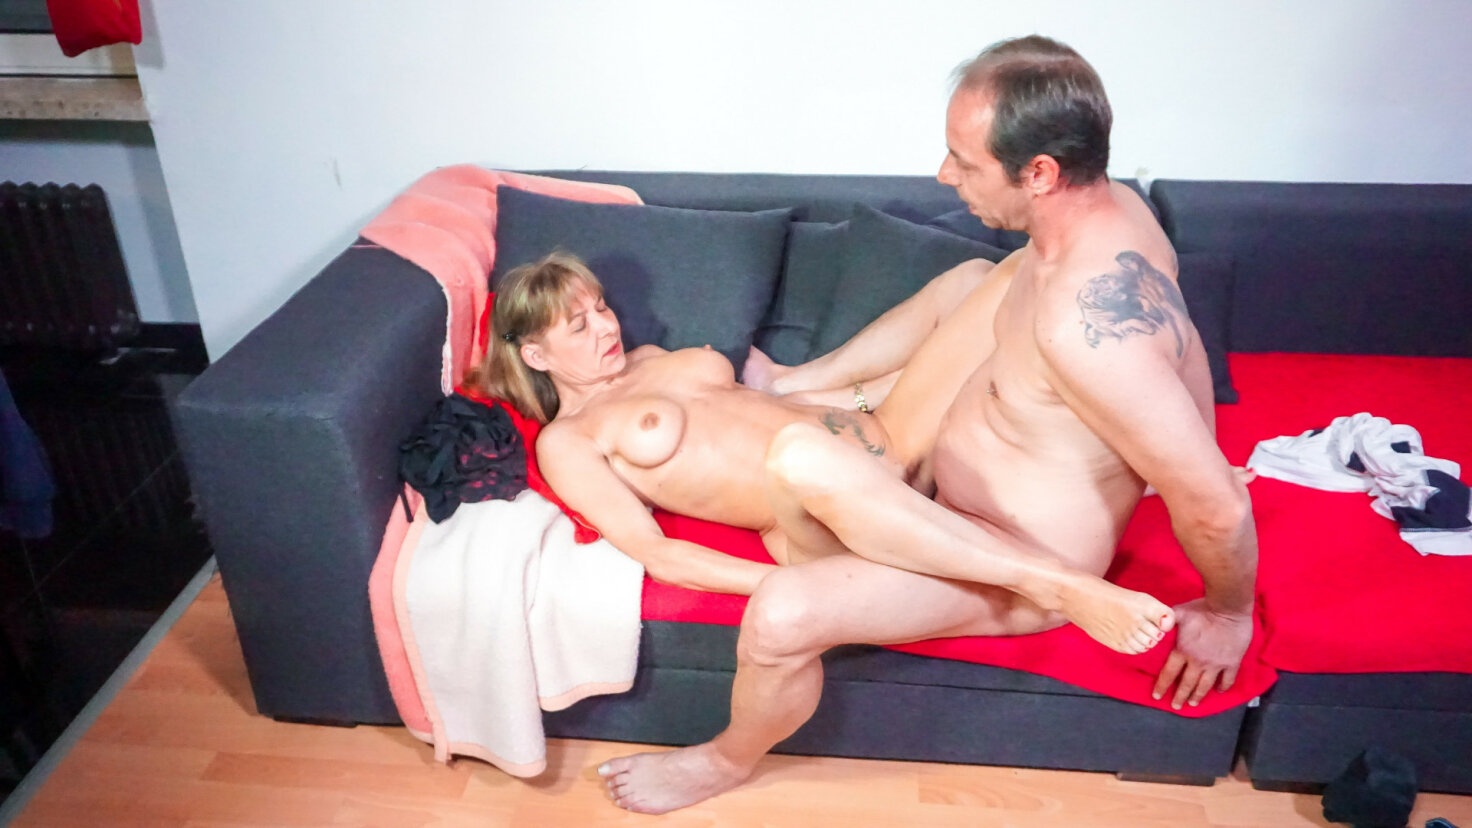 Naughty German mature housewife enjoys hardcore fuck and eats cum